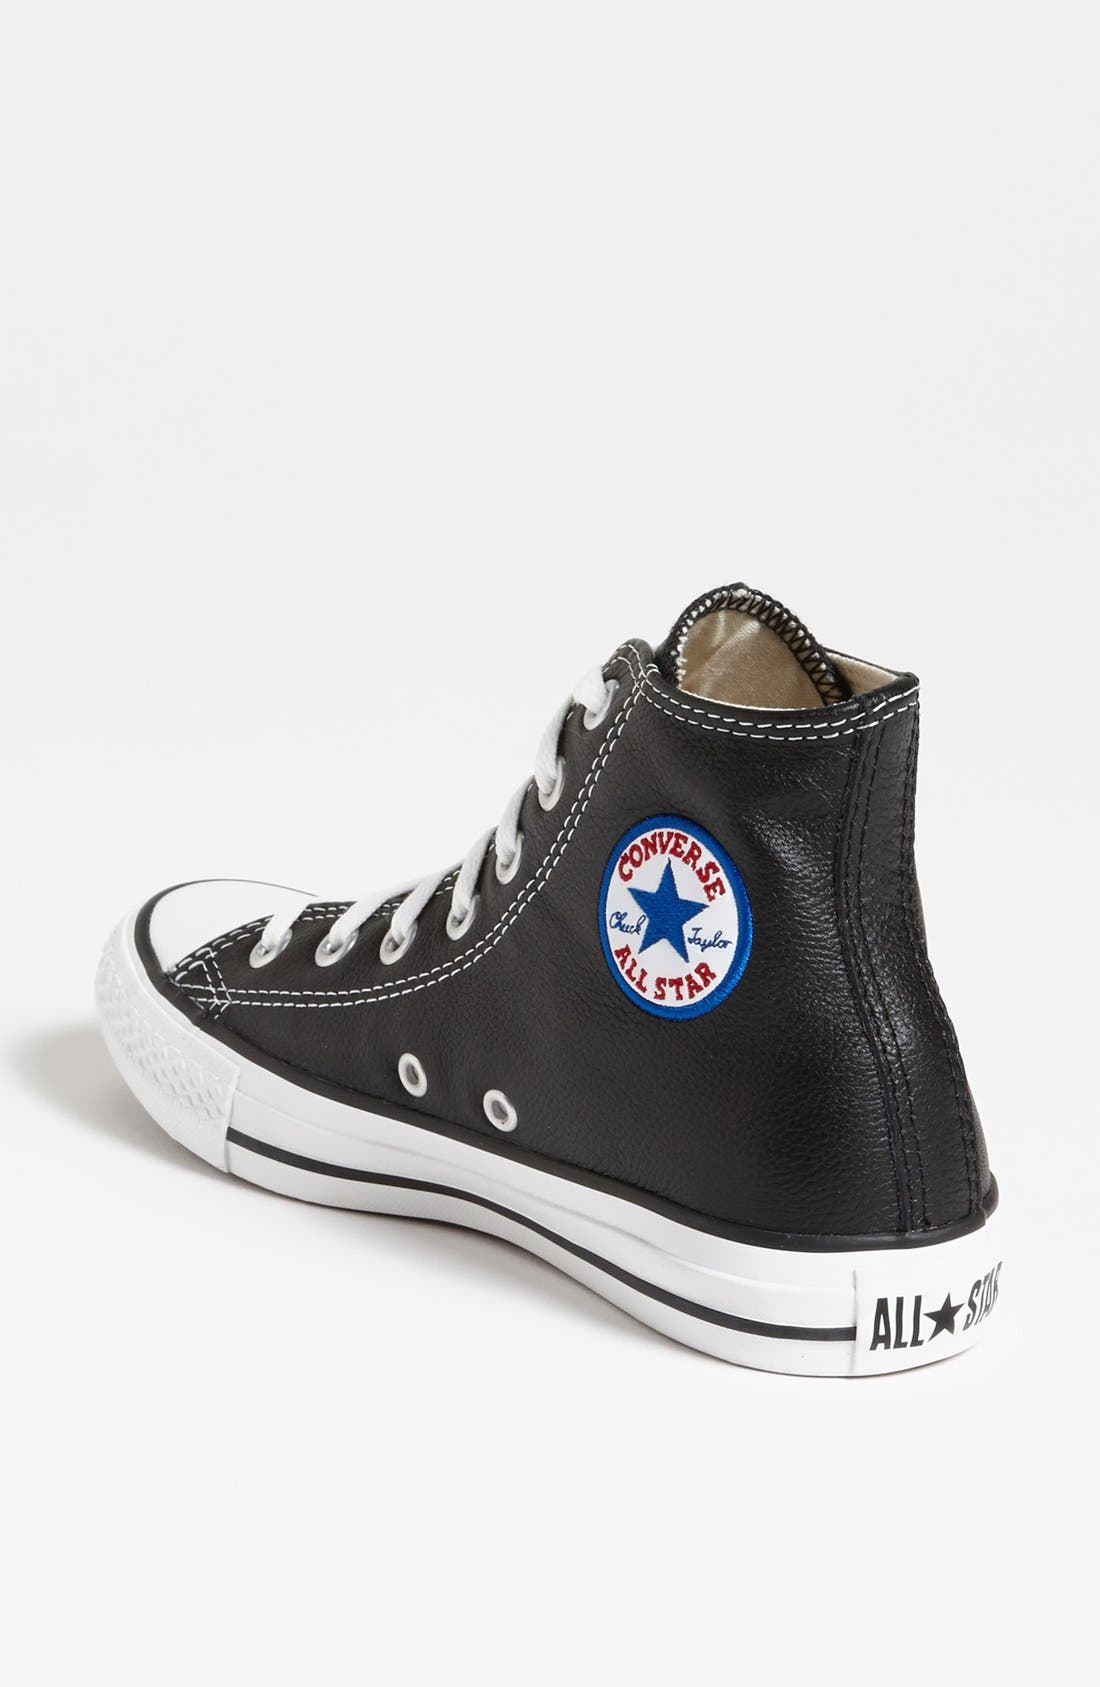 Alternate Image 2  - Converse Chuck Taylor® All-Star® Leather High Top Sneaker (Women)